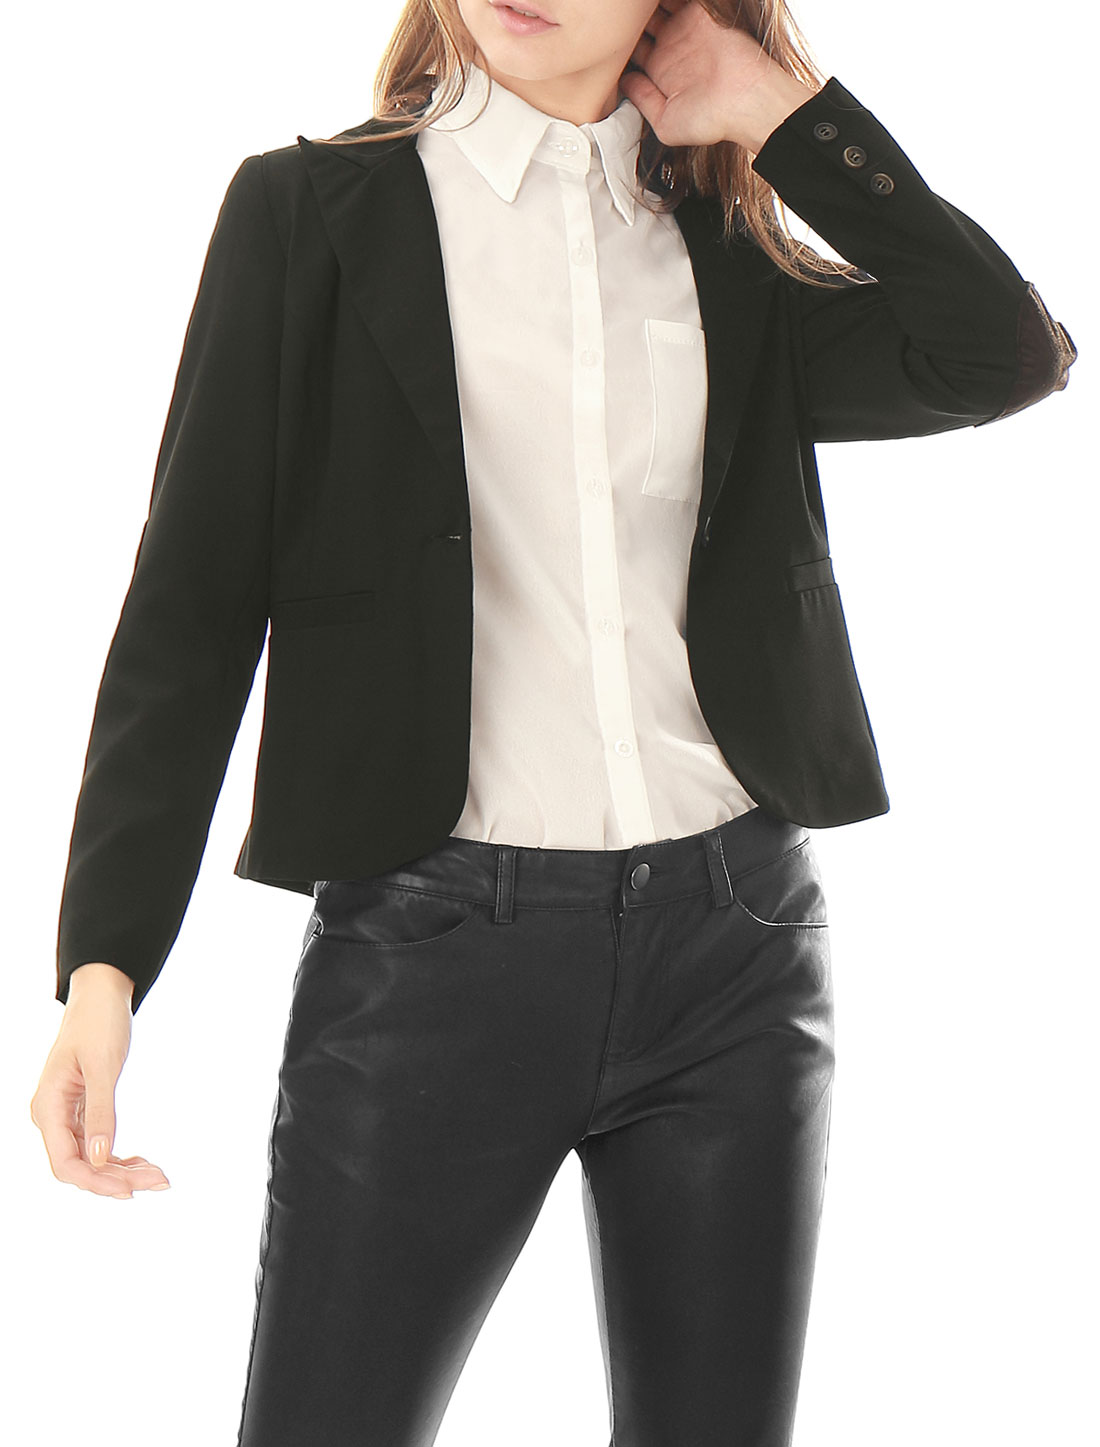 Women Peaked Lapel One-Button Elbow-Patch Blazer Black S